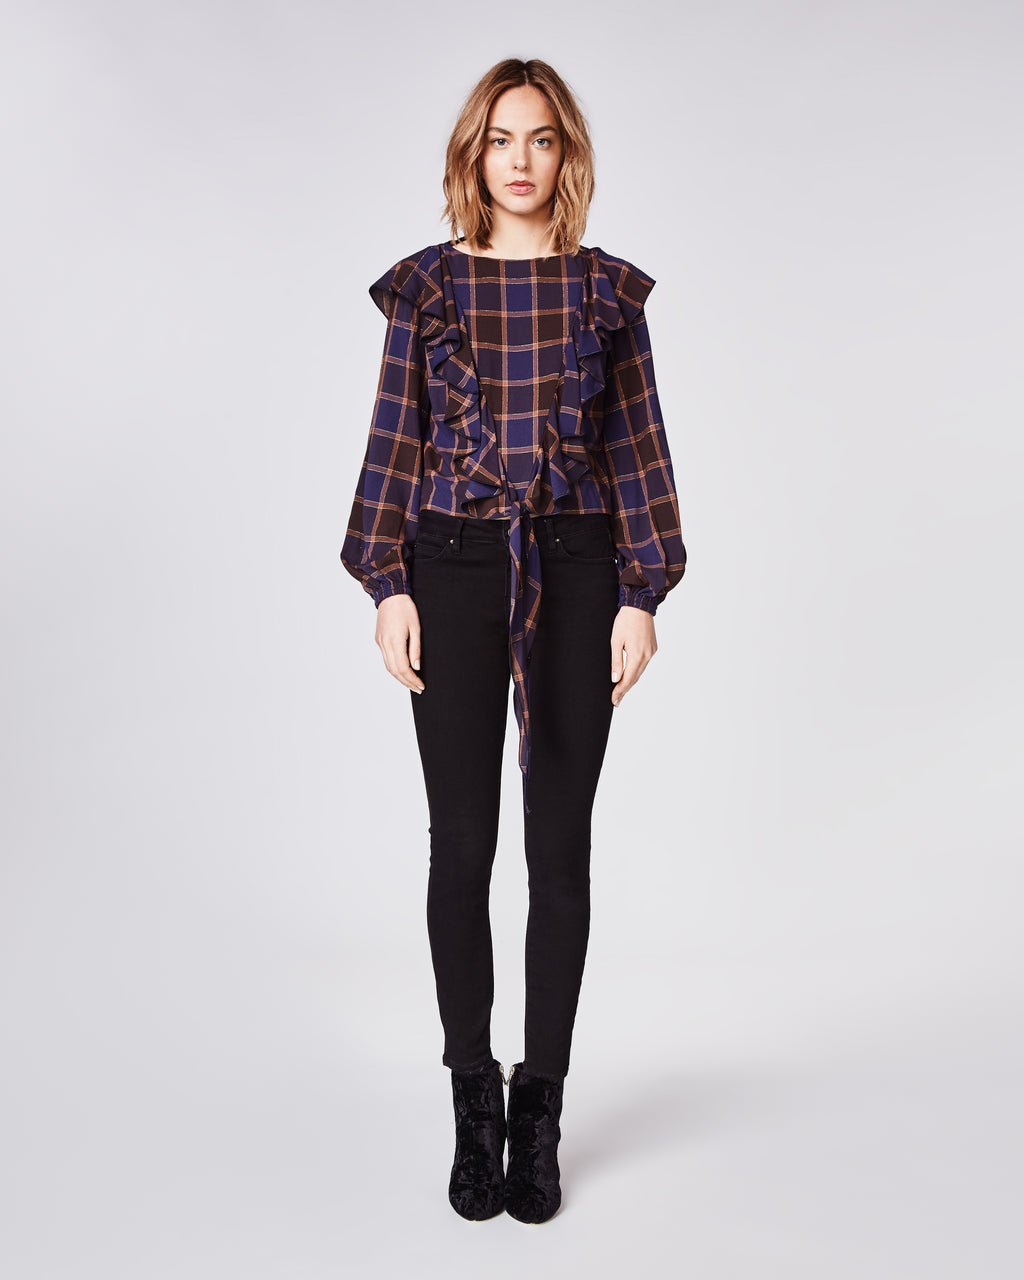 BG10300 - BOYFRIEND PLAID LONGSLEEVE RUFFLE BLOUSE - tops - blouses - The perfect update to the classic plaid top. Featuring a ruffle accent and tie-waist, you will want to wear this top everyday this Fall. Unlined.